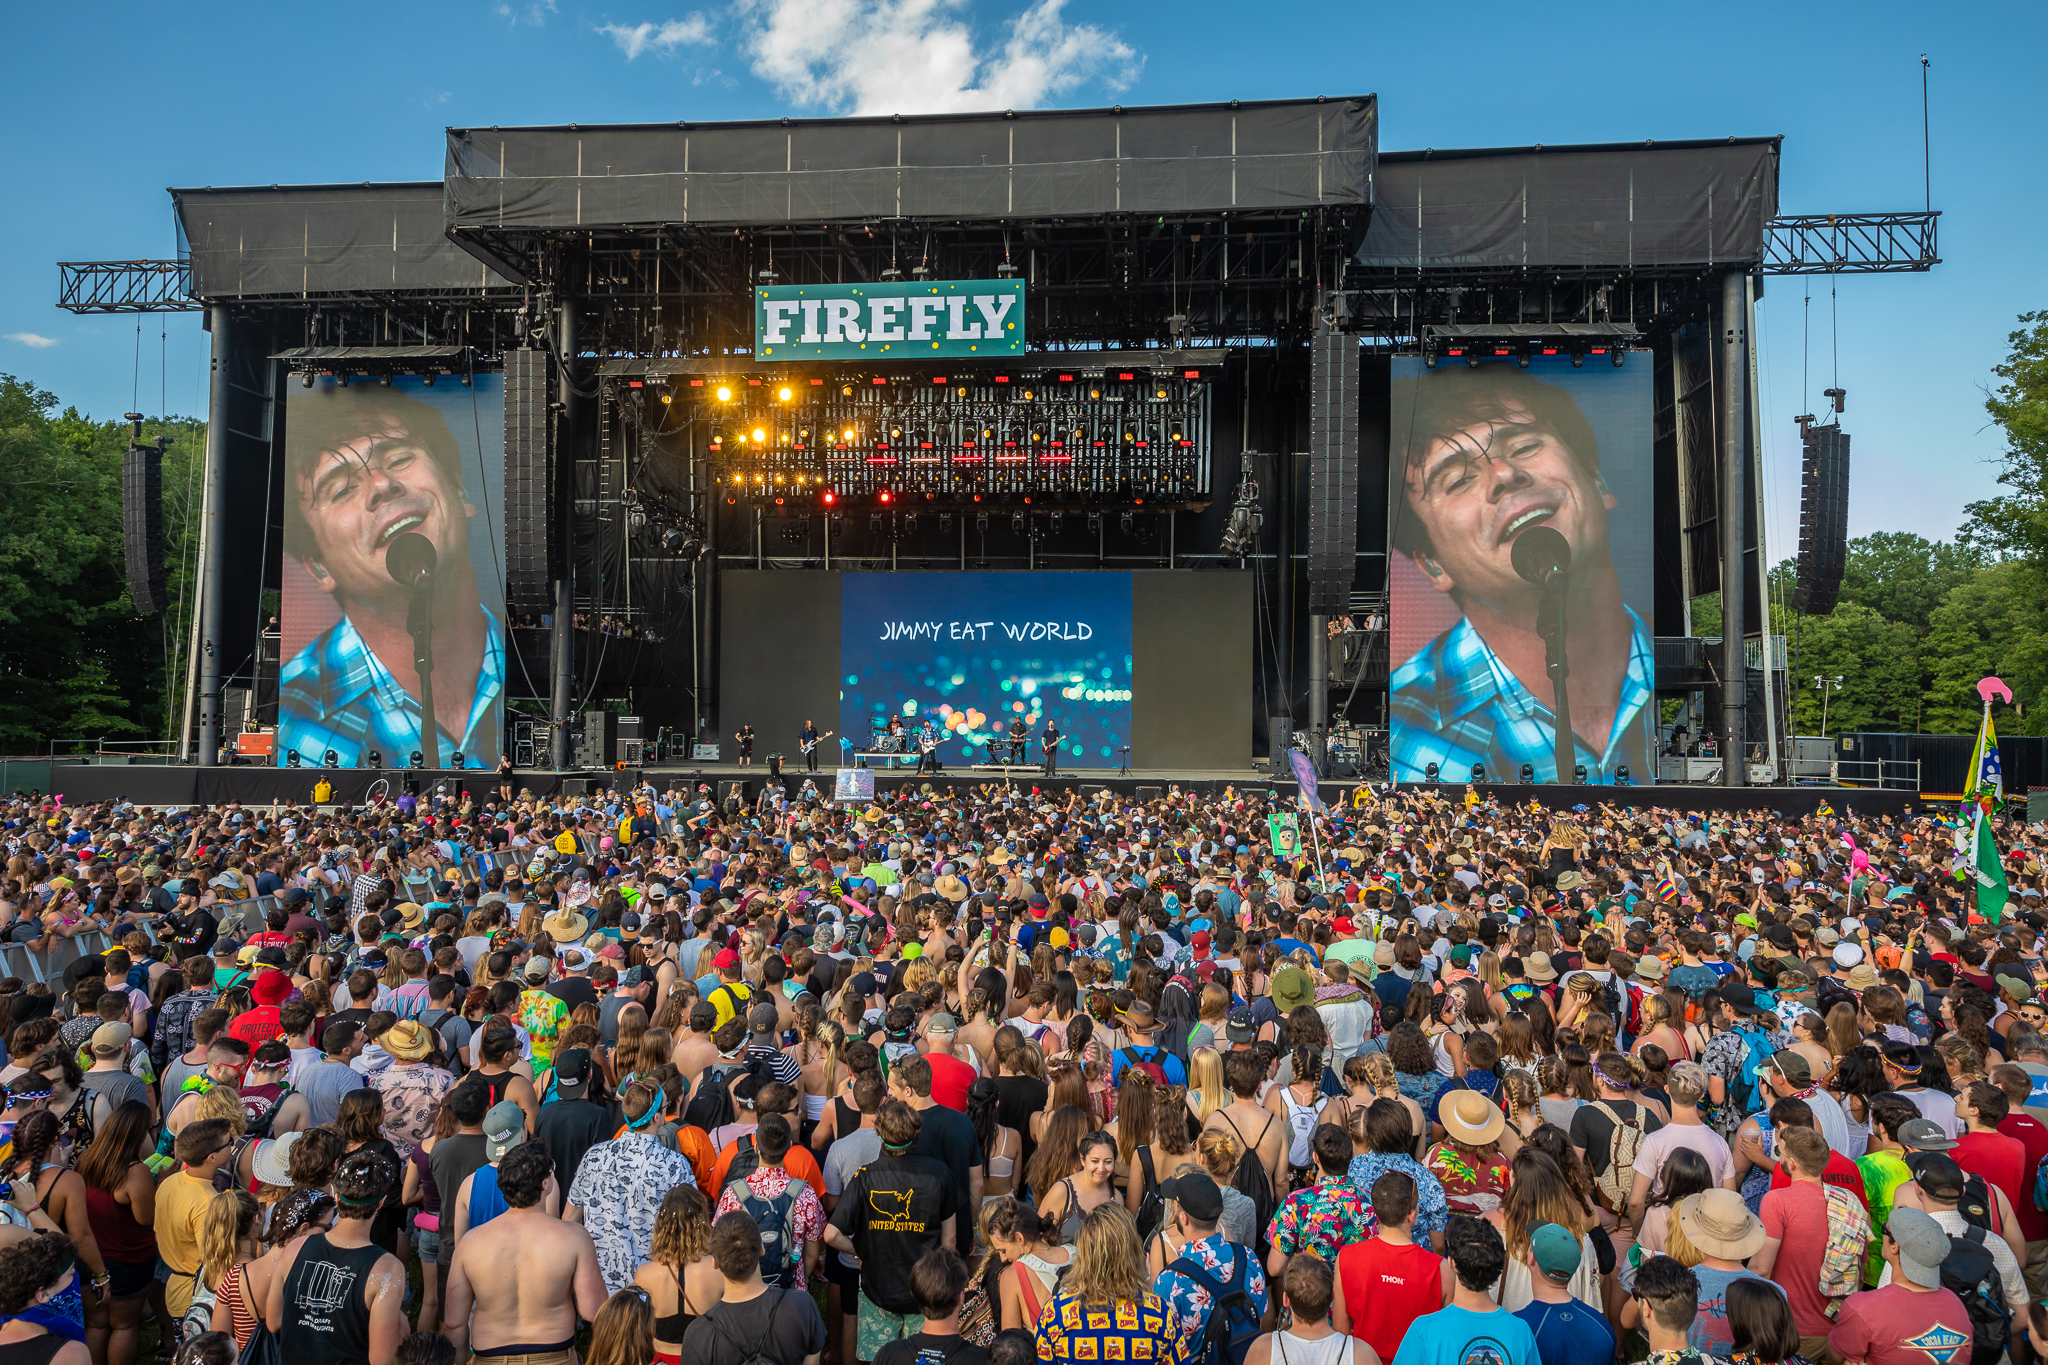 Firefly Music Festival Image Courtesy Jake Frommer (MadHouse Presents)